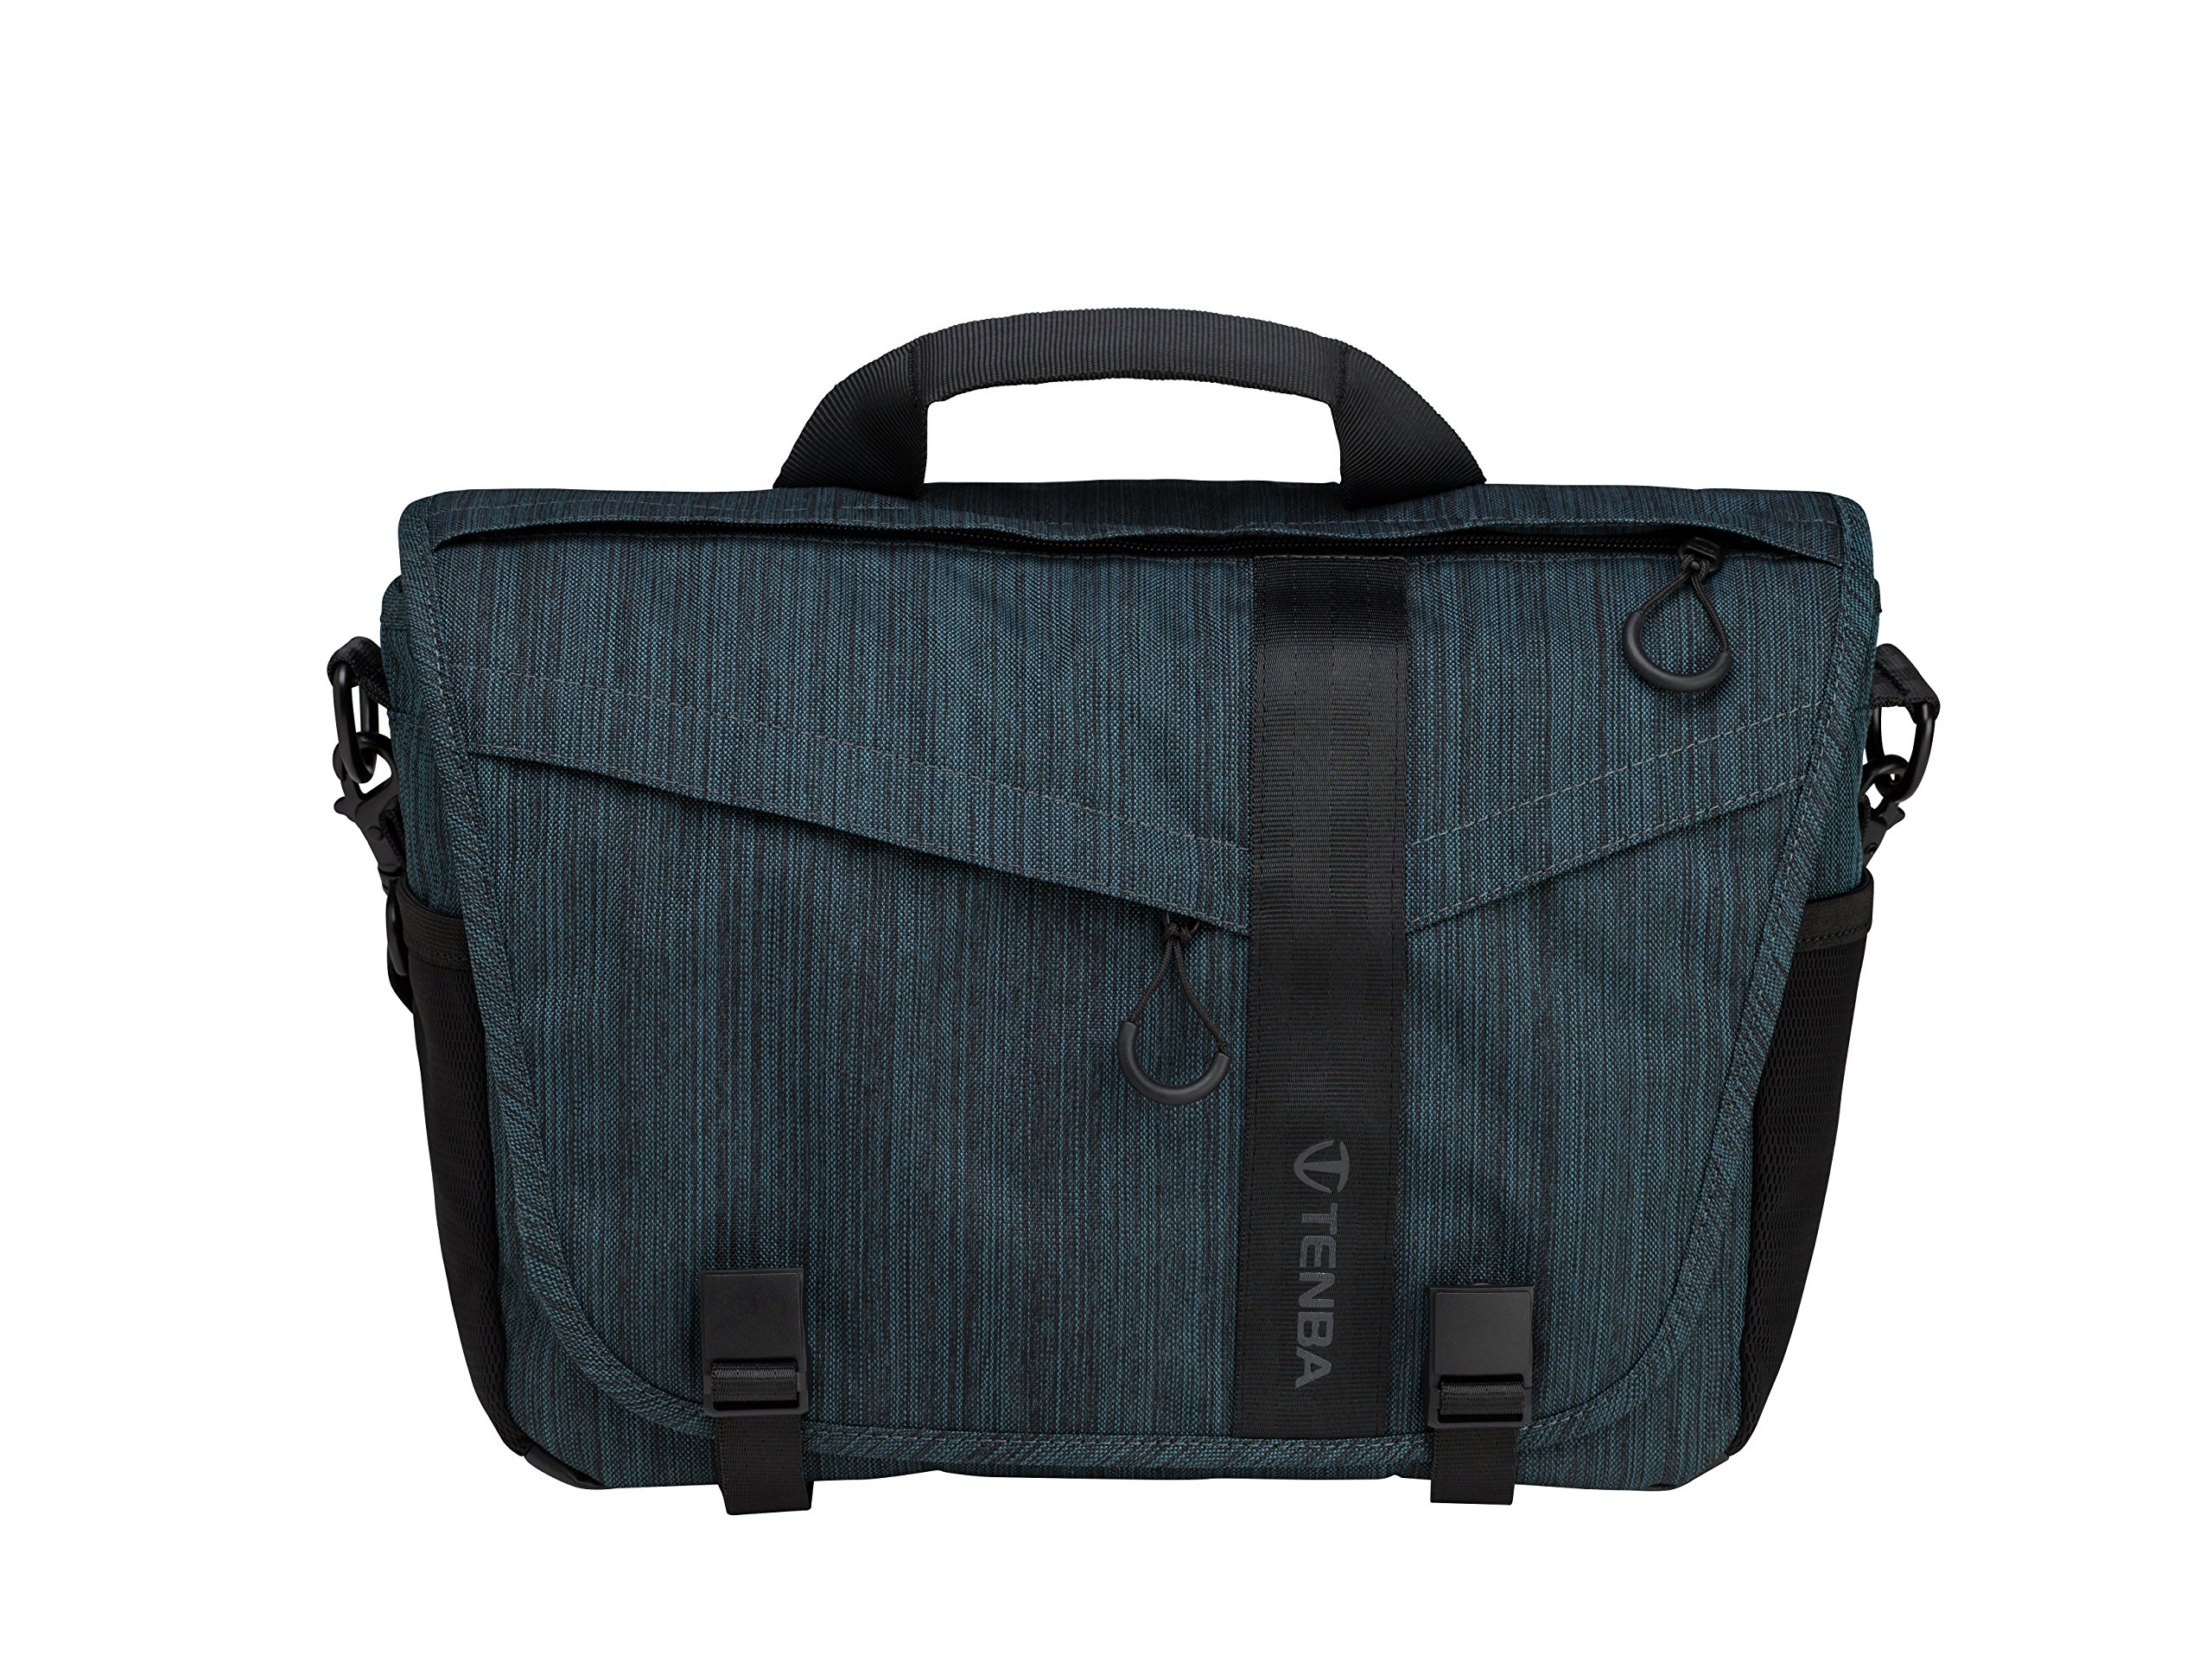 Tenba Messenger DNA 11 Camera and Laptop Bag - Cobalt (638-373)